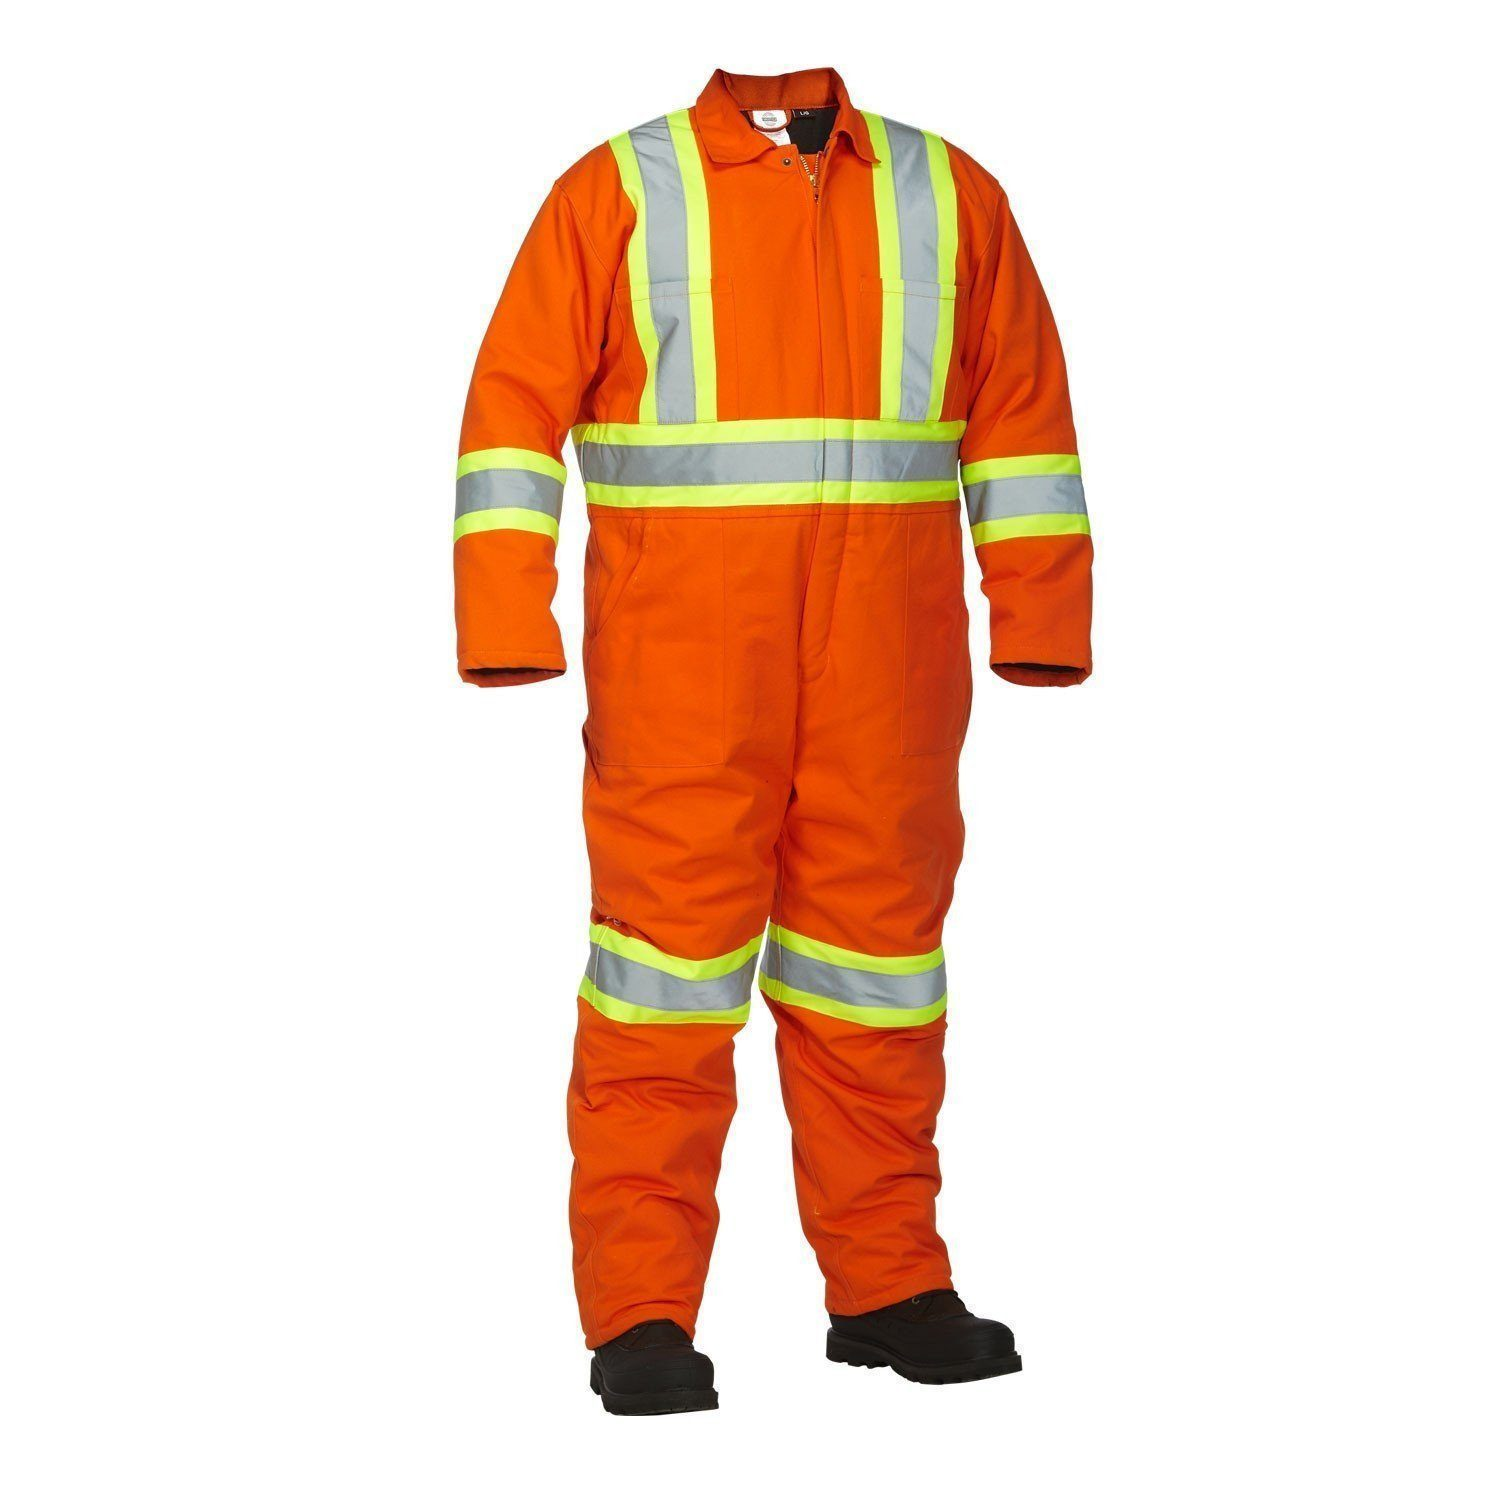 Forcefield Hi-Vis Safety Lined Coverall 024-OR34